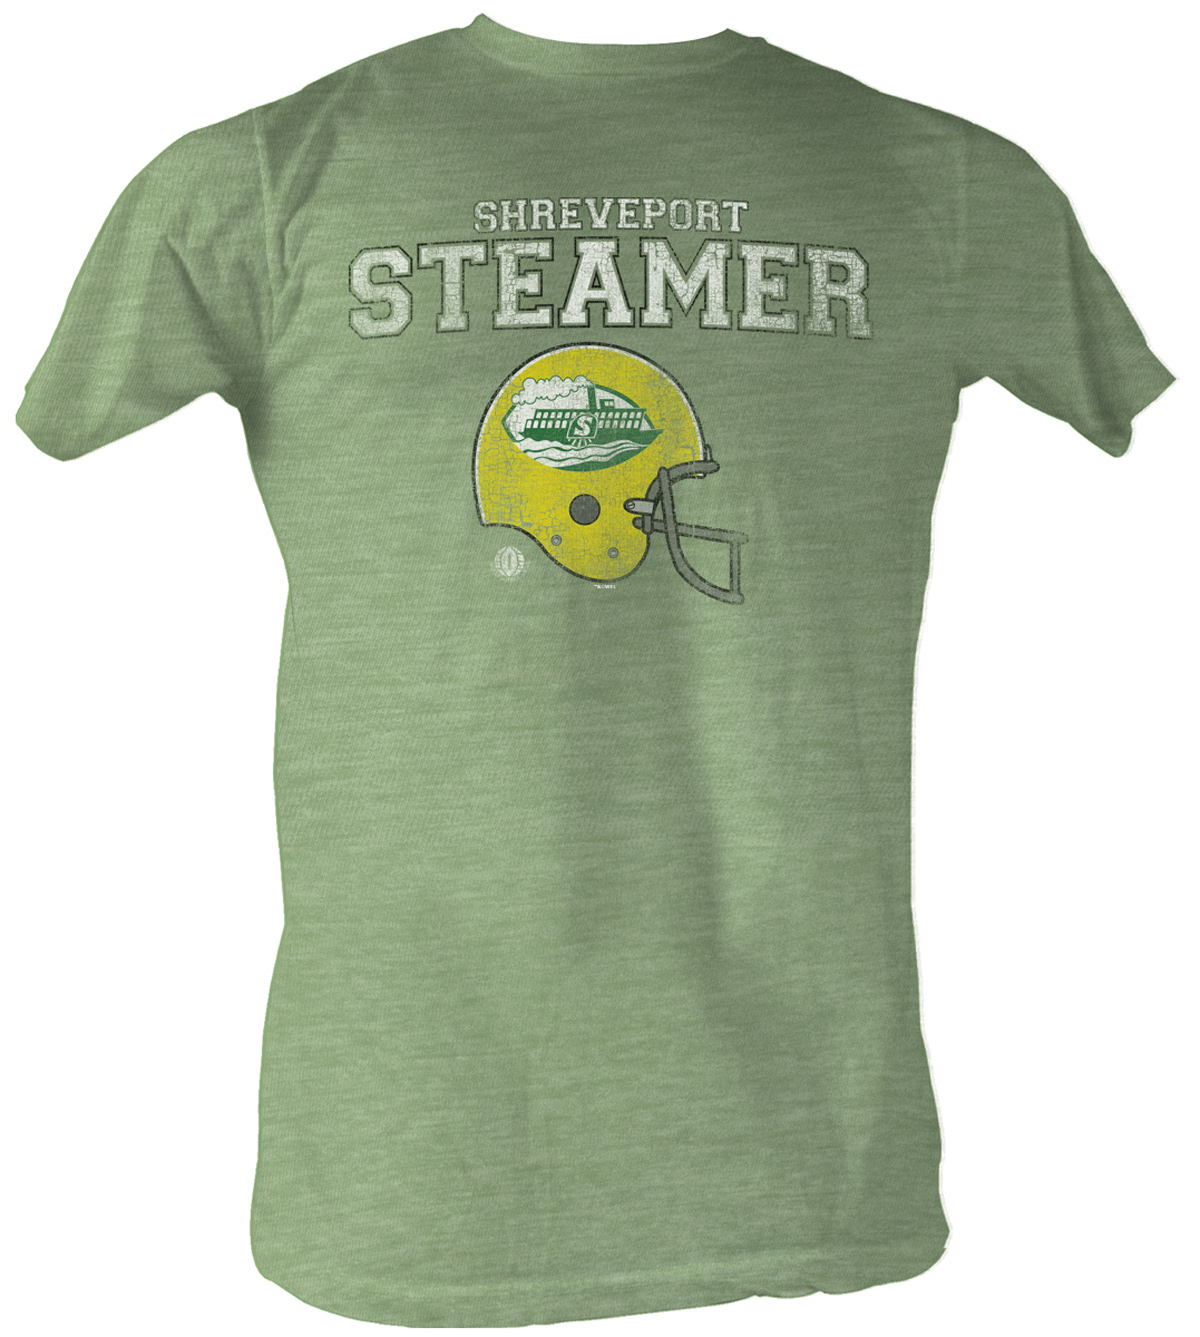 World Football League T Shirt Shreveport Steamers Green